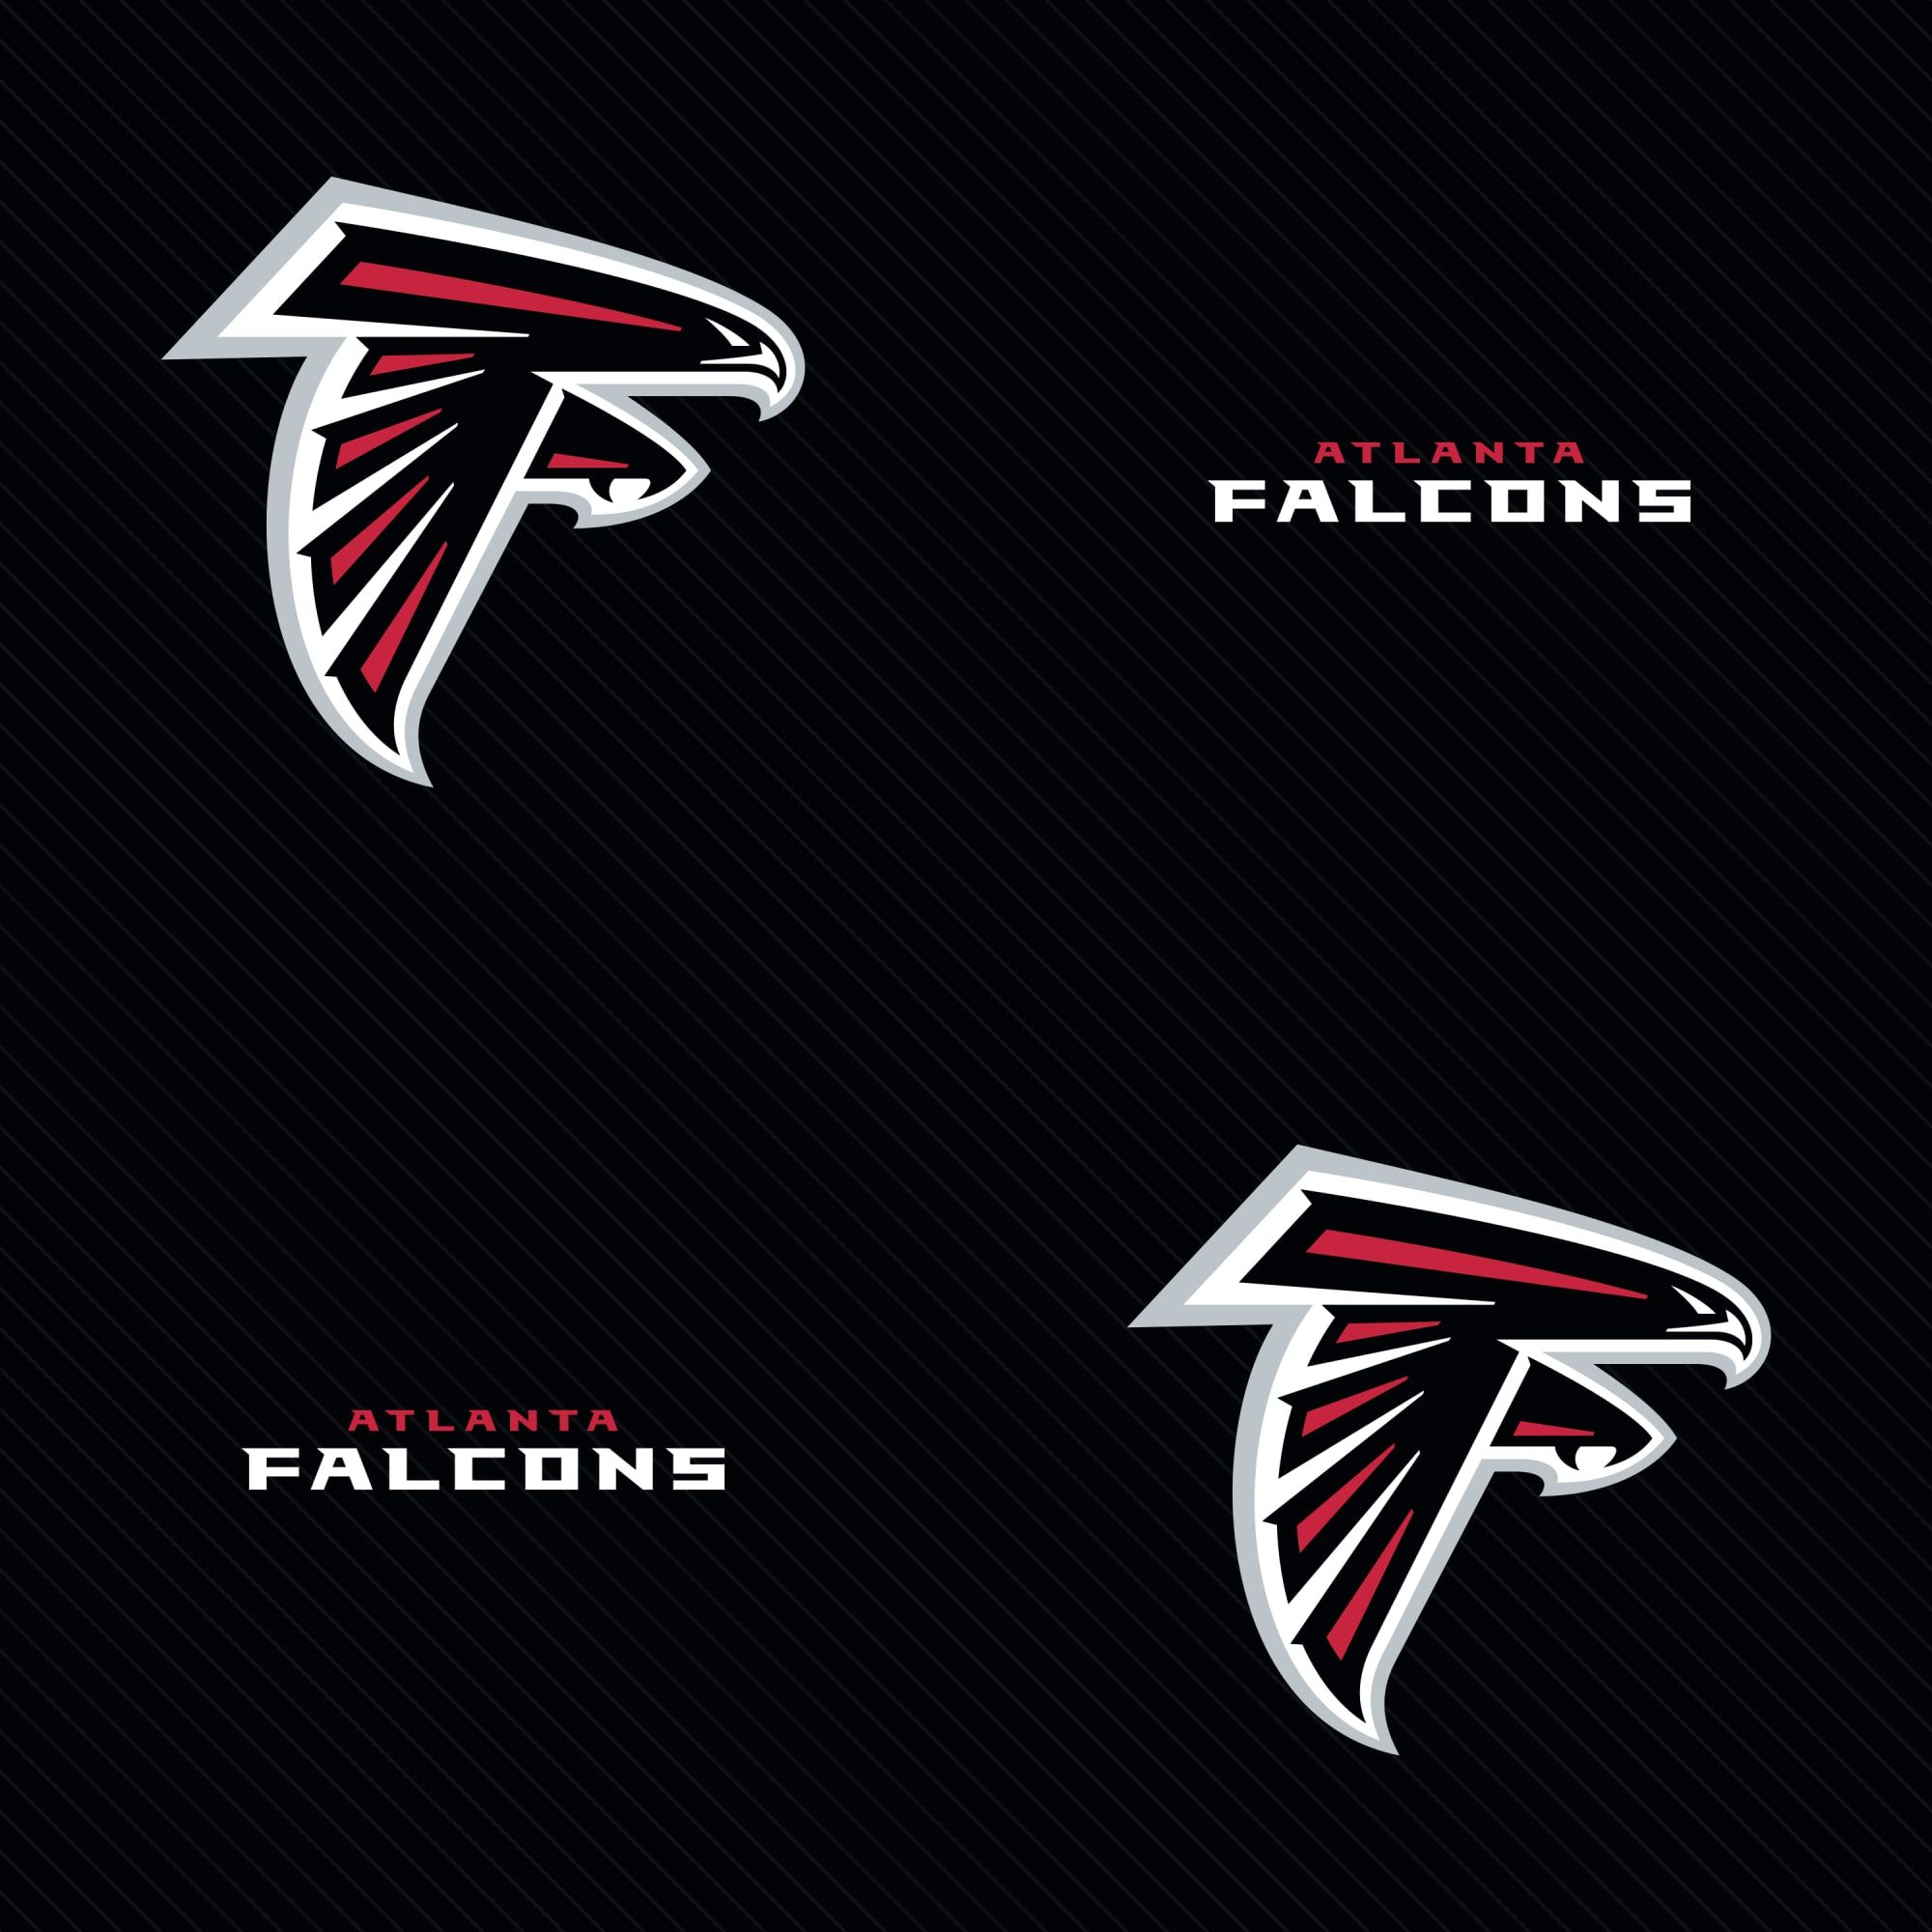 Atlanta Falcons Iphone Wallpaper Atlanta Falcons Wallpaper Atlanta Falcons Art Atlanta Falcons Logo